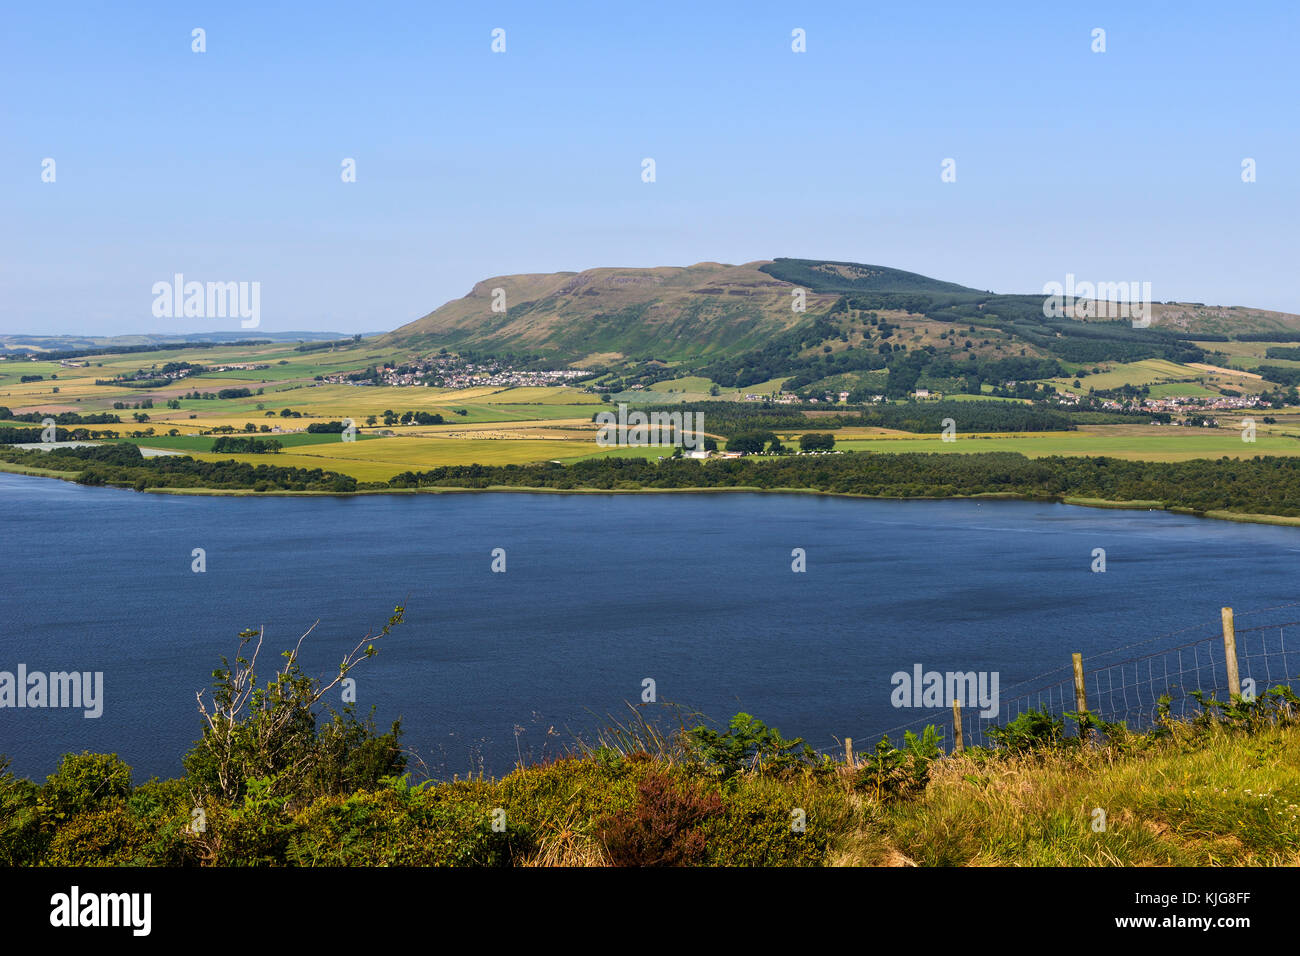 View across Loch Leven to the Lomond Hills from the slopes of Benarty Hill, Perth and Kinross, Scotland - Stock Image